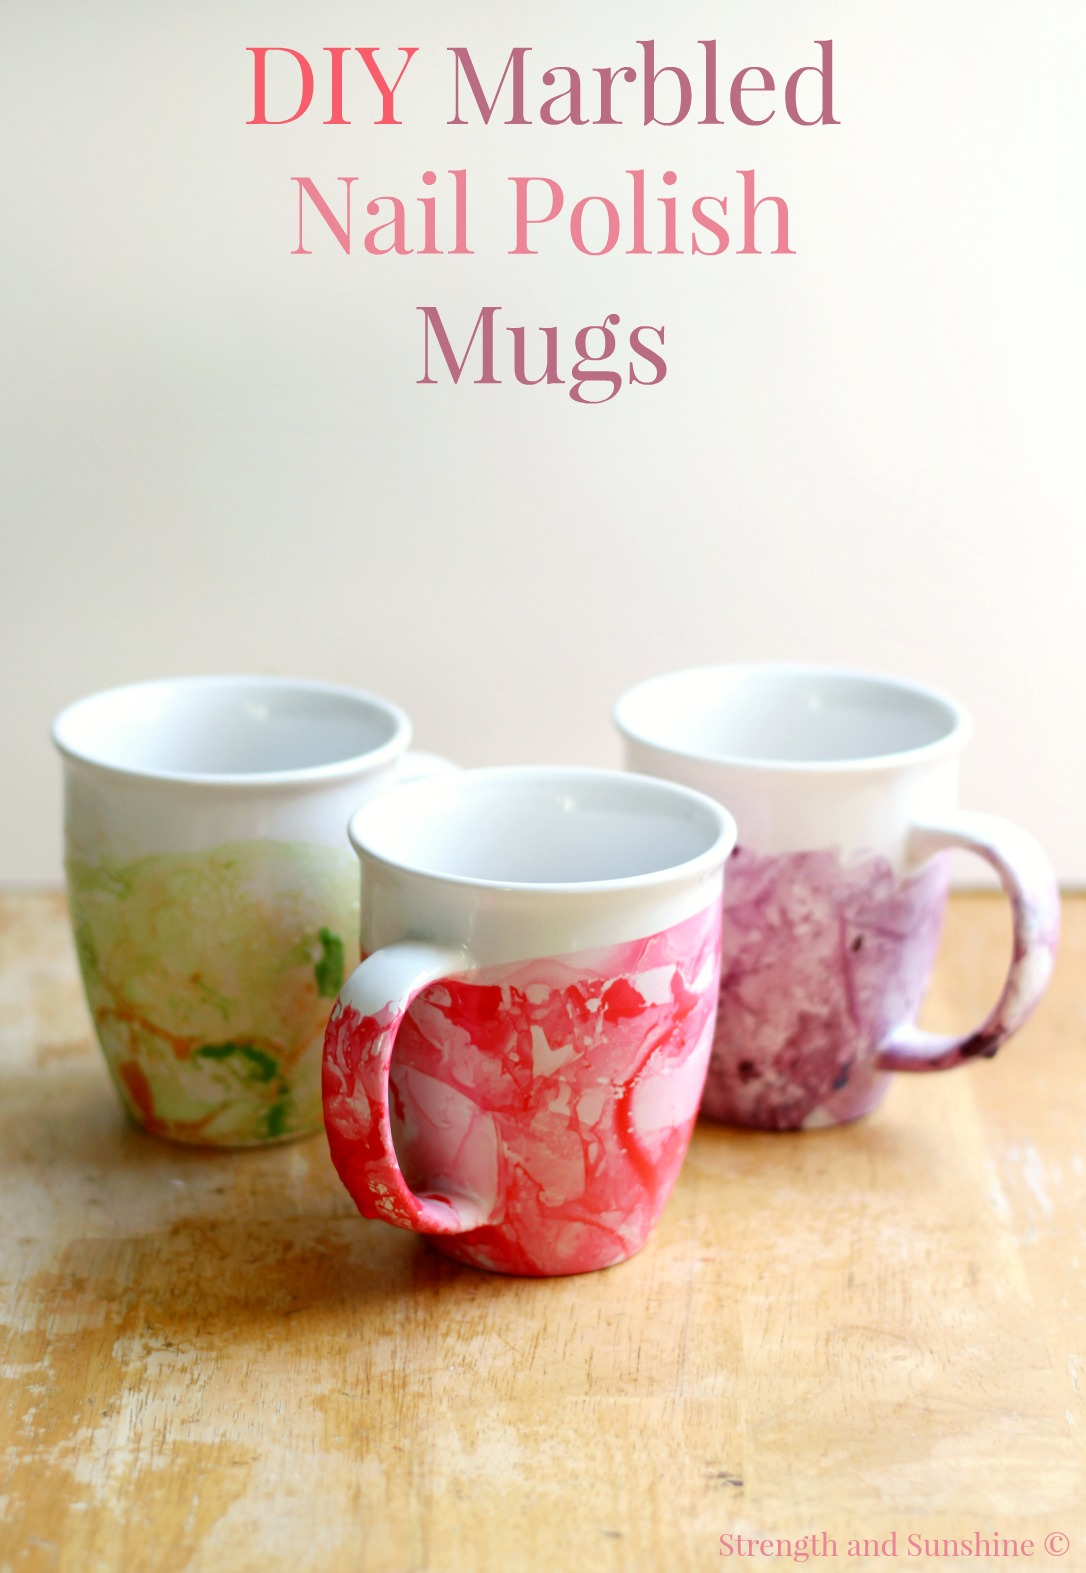 diy marbled nail polish mugs strength and sunshine rebeccagf666 easy diy marbled nail polish